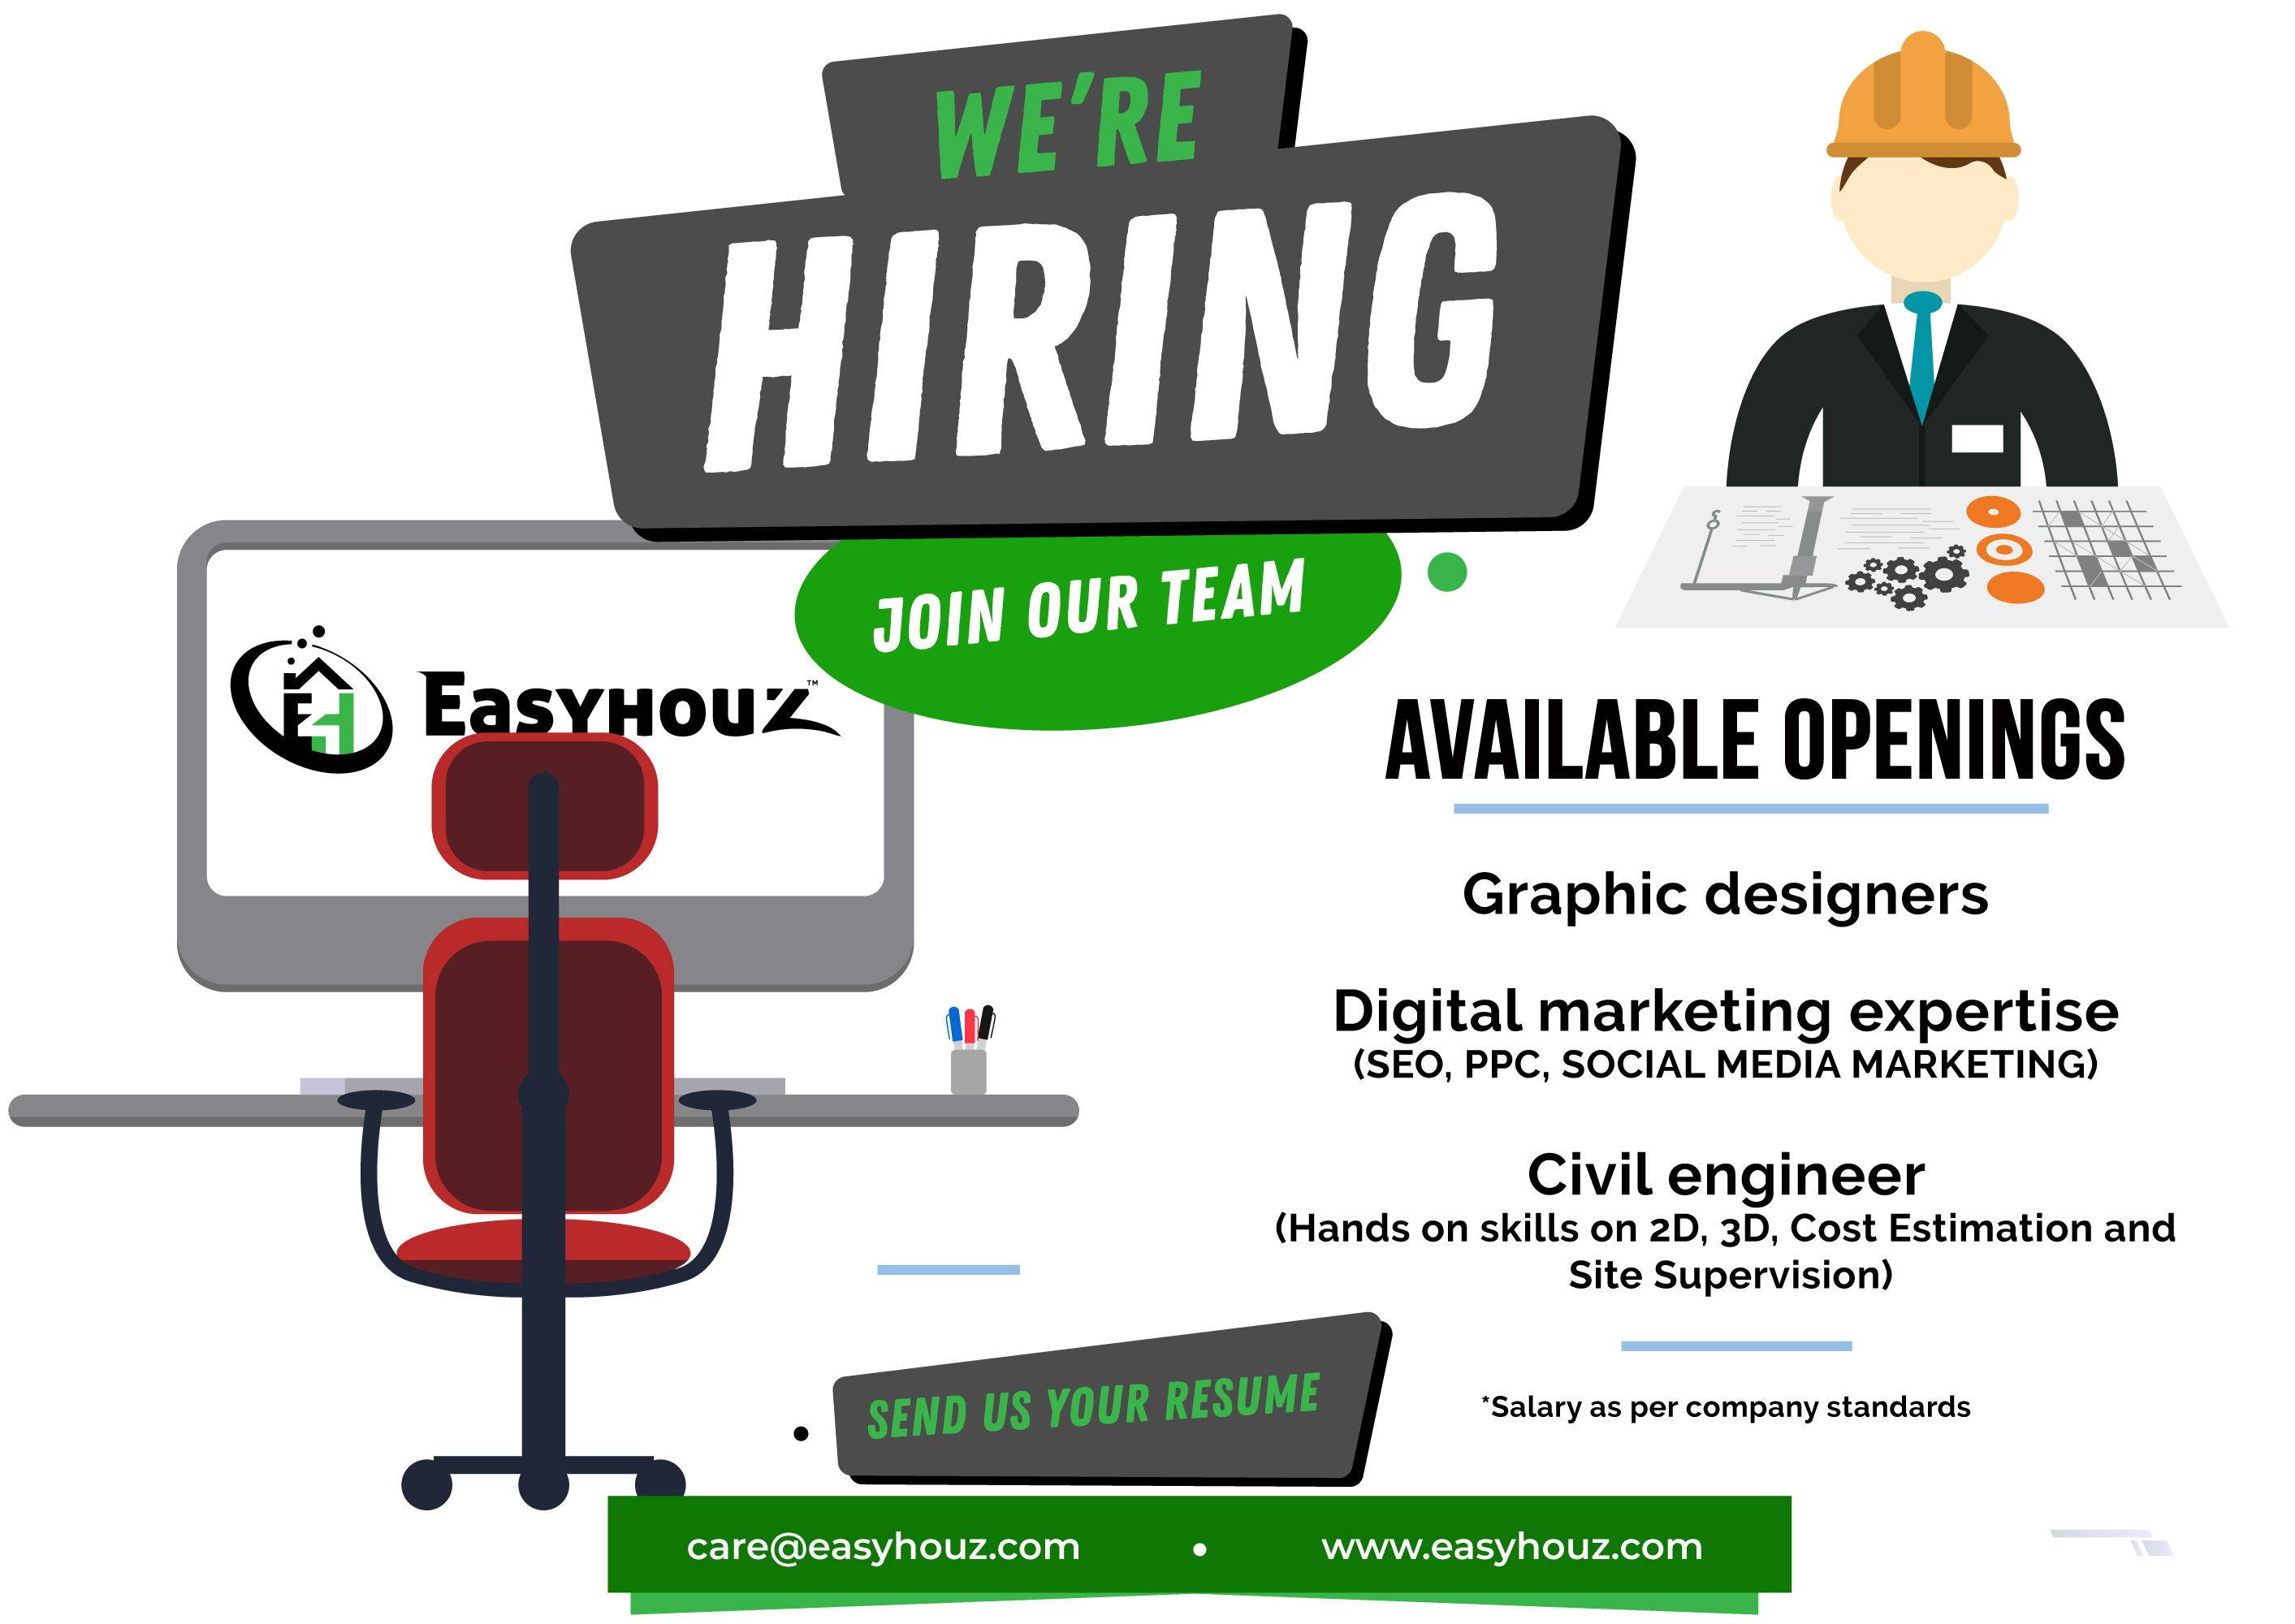 We are hiring!!! Send us your resume👉🏻